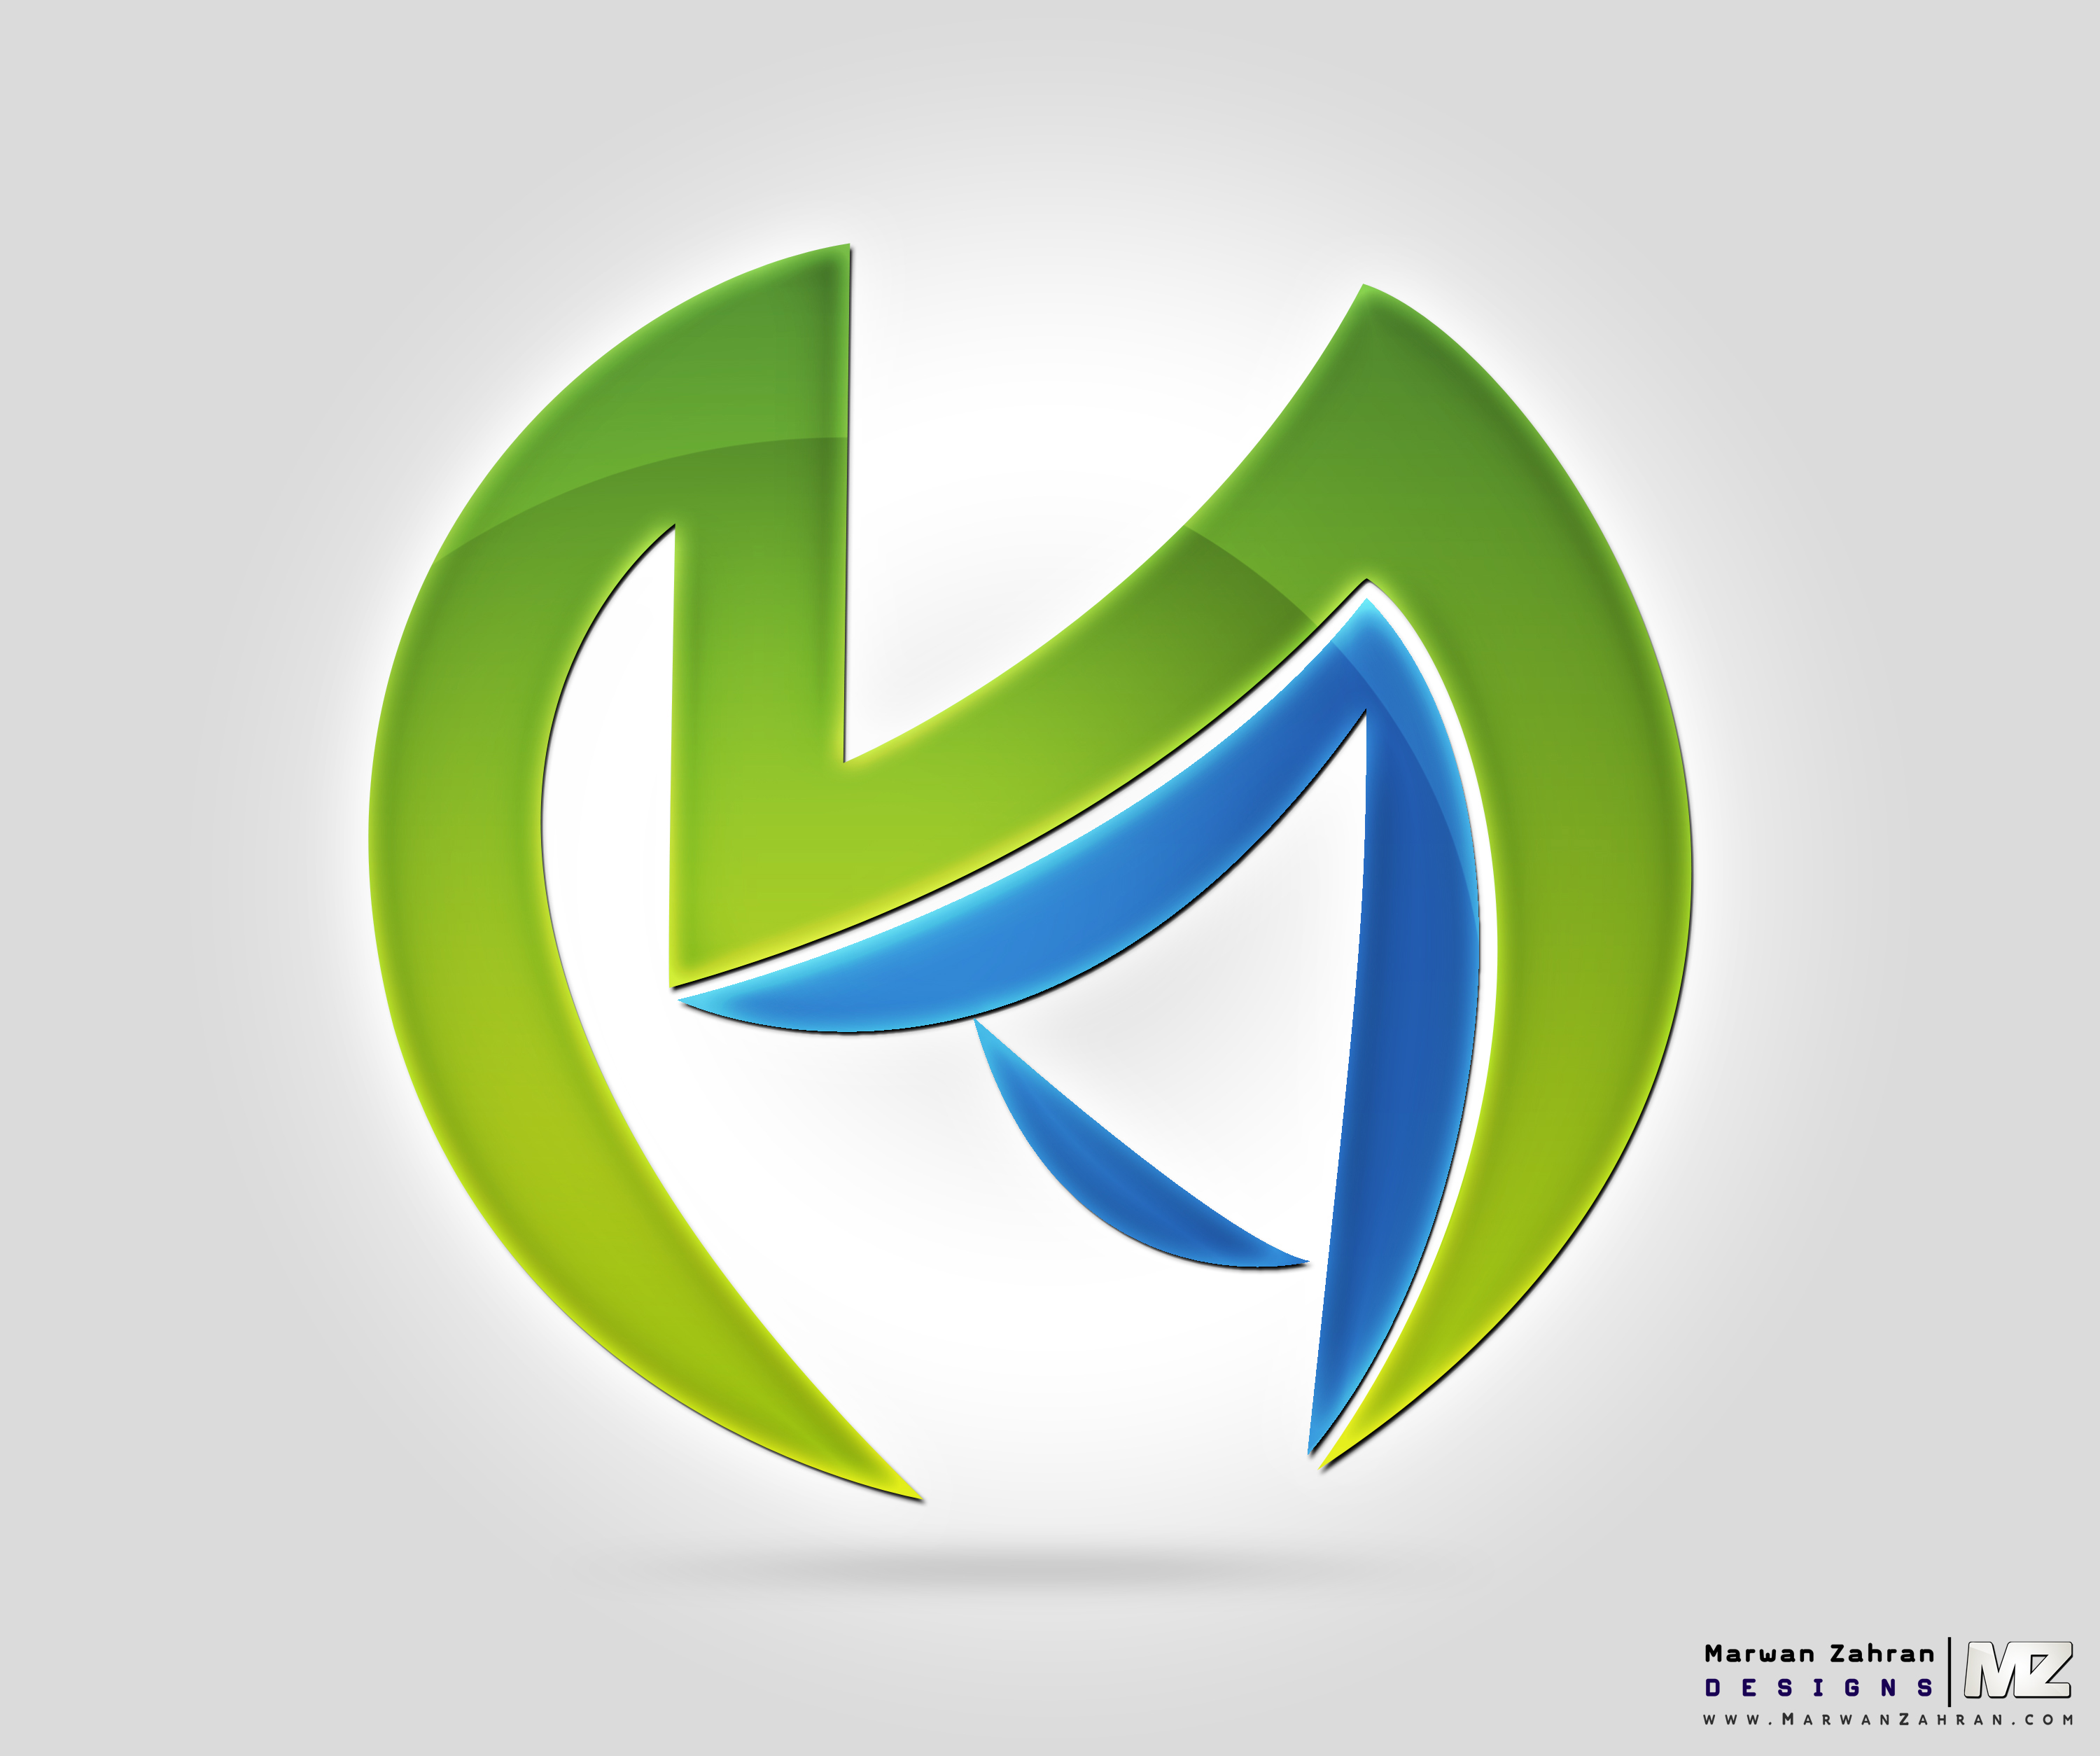 Logos design by marwanzahran on deviantart for Painting and decorating logo ideas